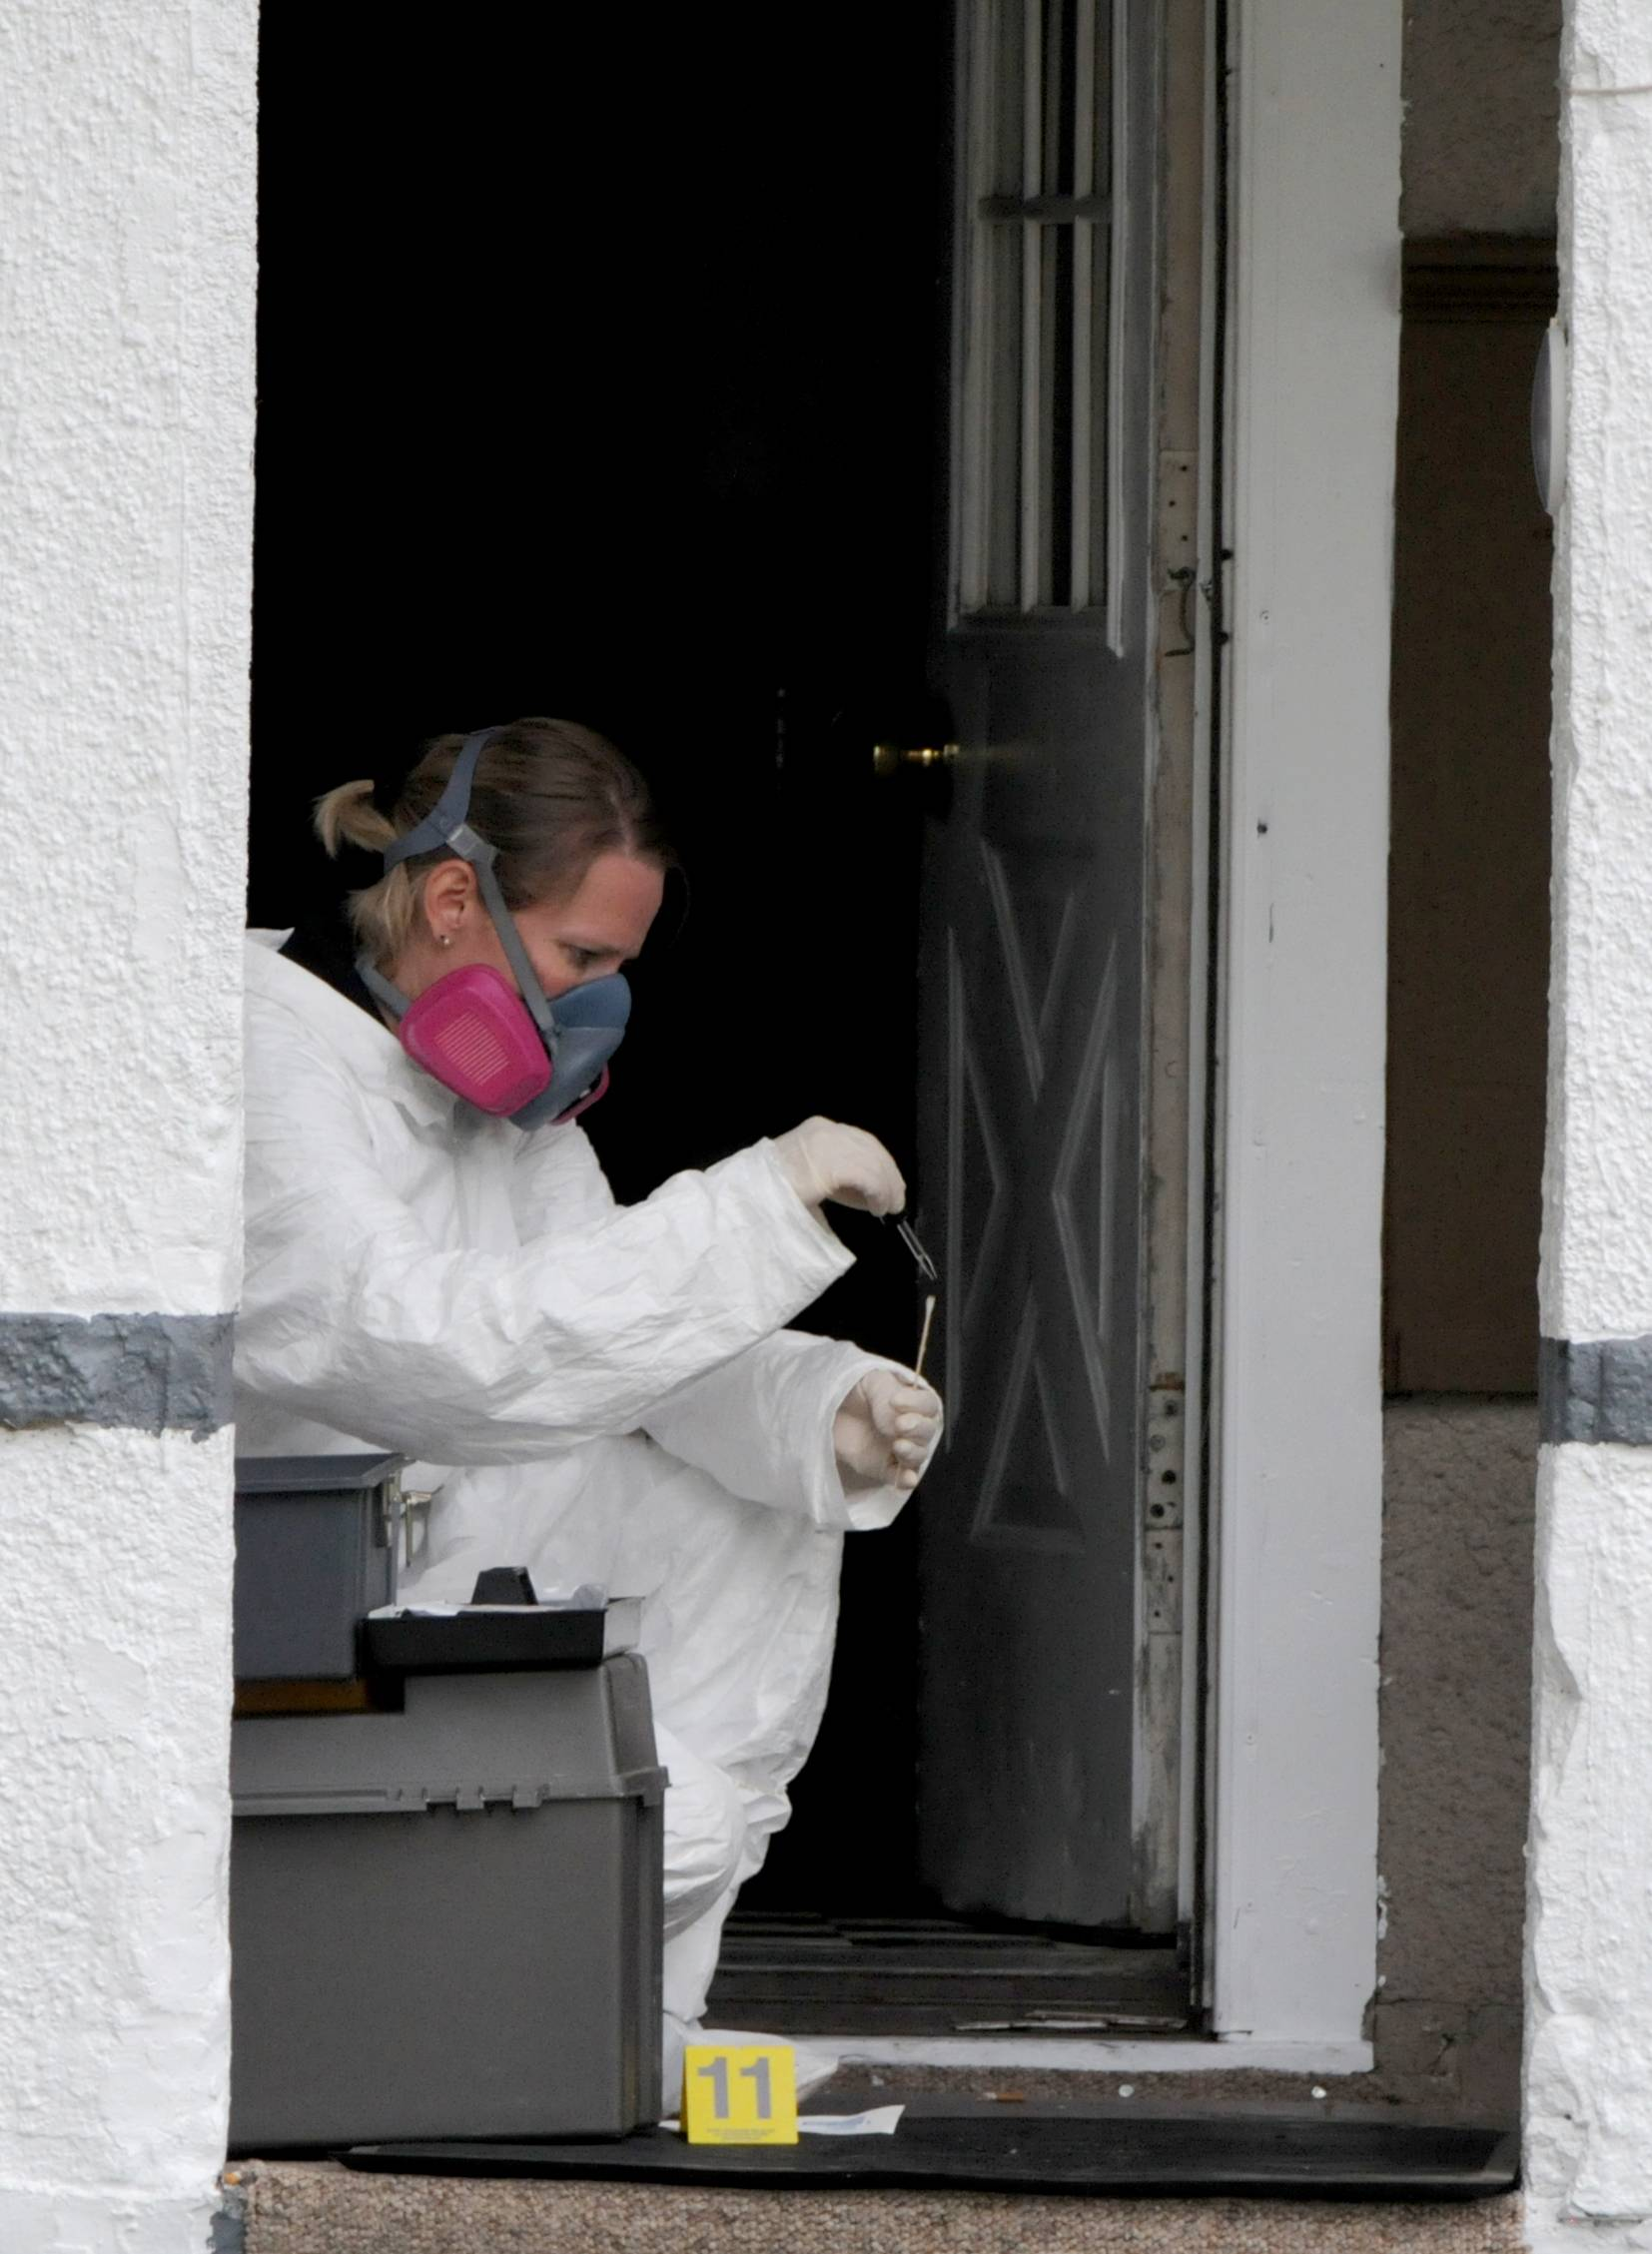 Brenda McNeely collects evidence at a home in Bucyrus, Ohio, where one of four men were found beaten to death Monday.